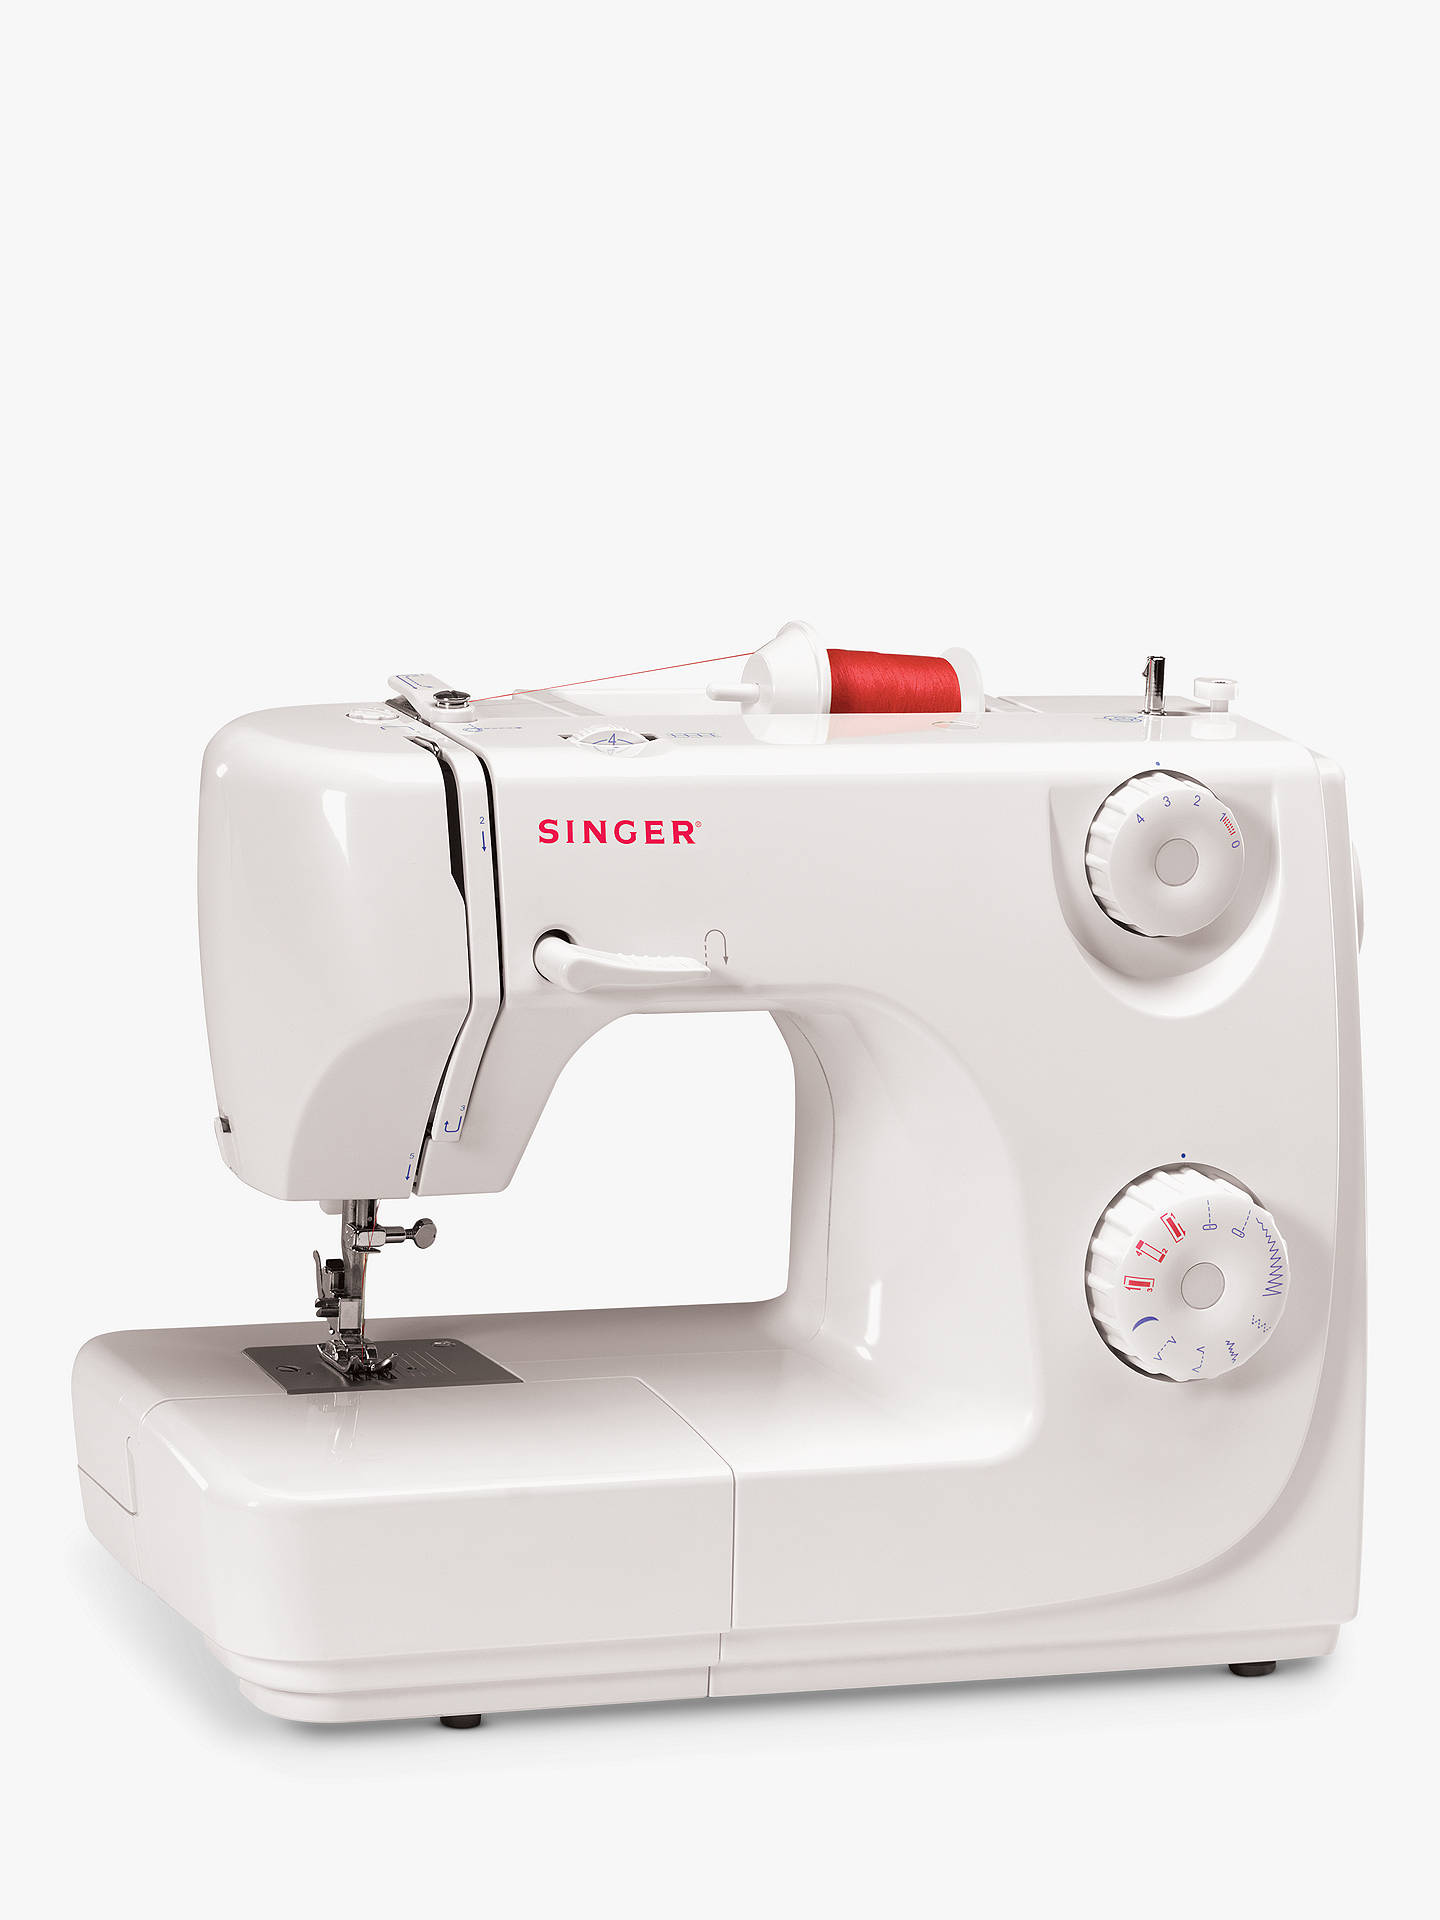 BuySinger 8280 Sewing Machine, White Online at johnlewis.com